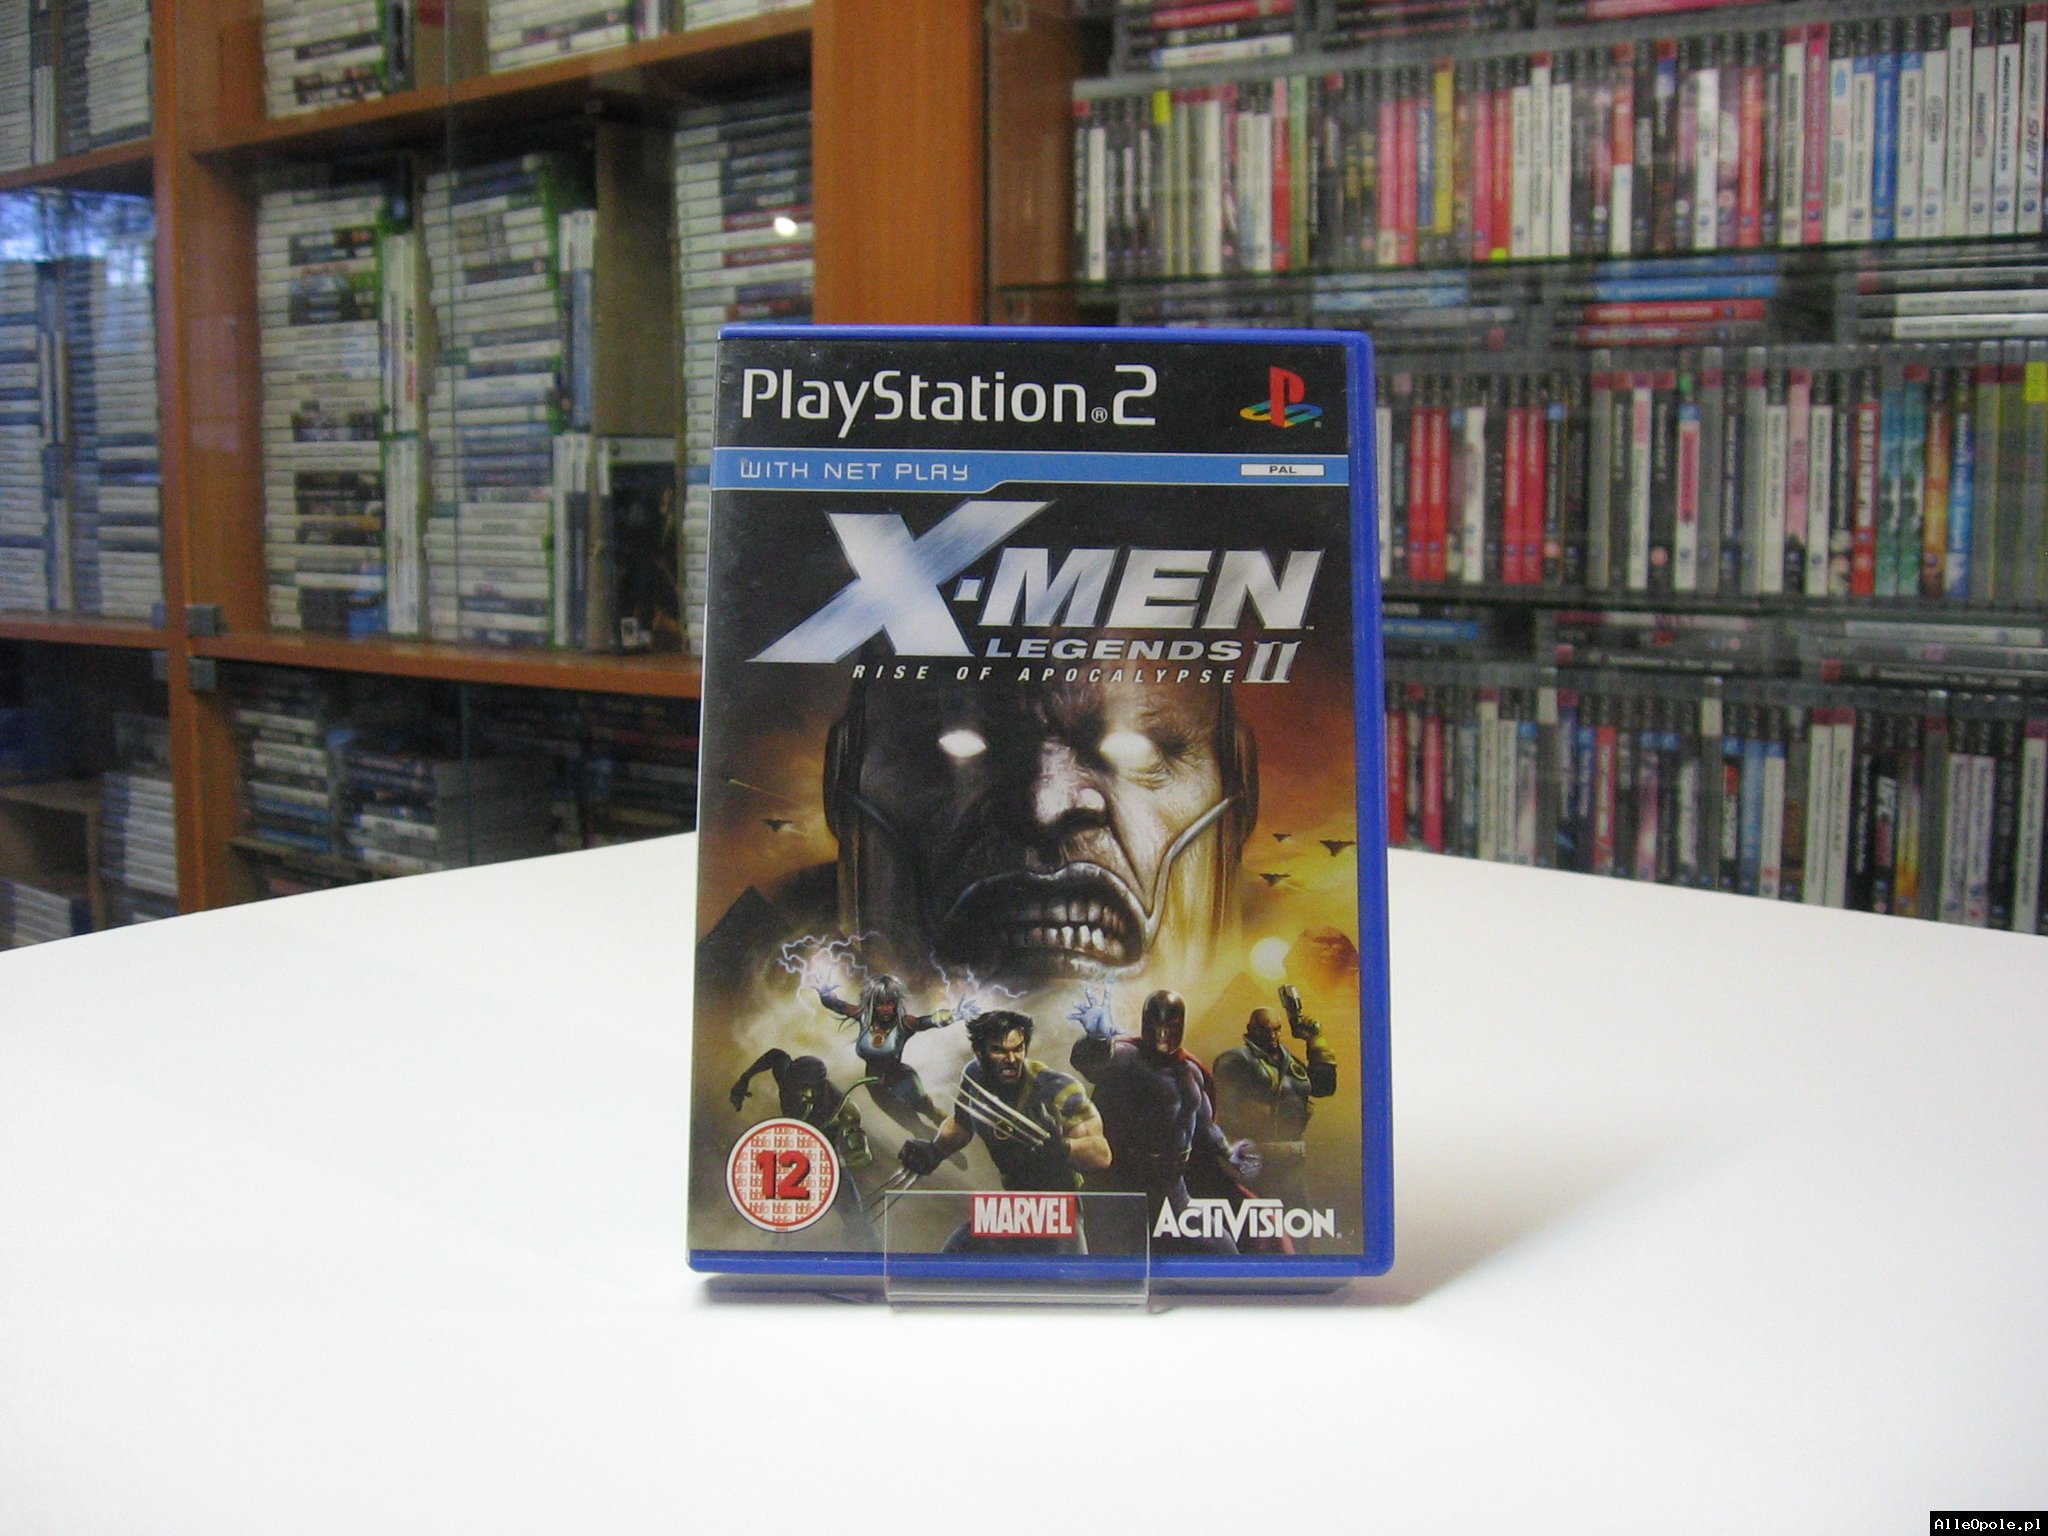 X-Men Legends 2 ll - RISE OF APOCALYPSE - GRA Ps2 - Opole 0578